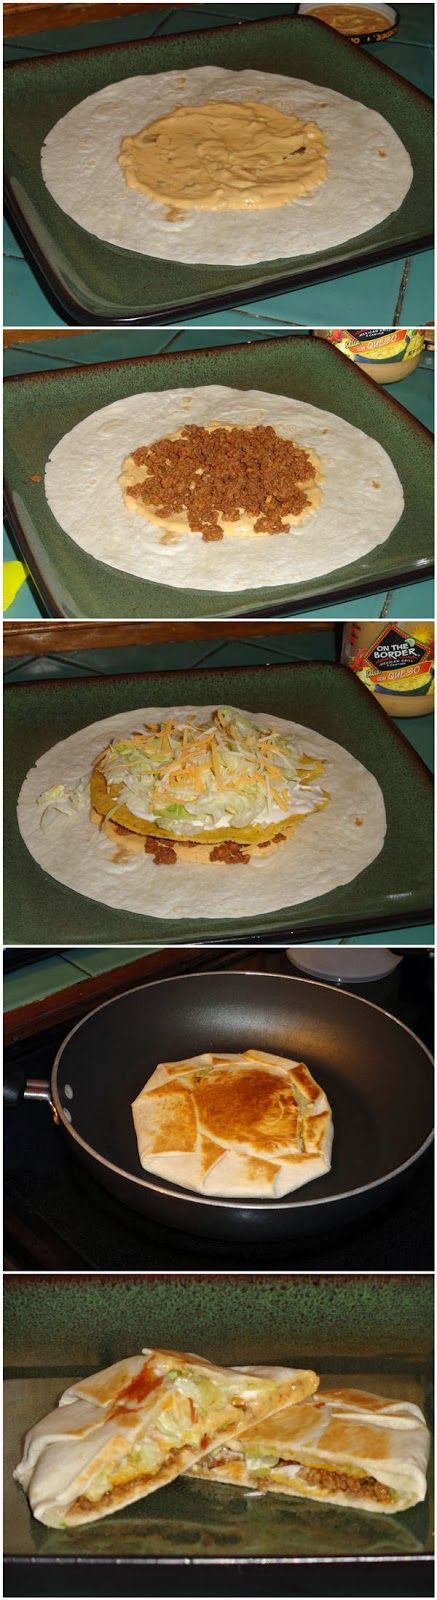 Yummy Crunchwrap Supremes... This is a great application of any kind of taco, fajita, tostada or burrito! Could be made vegetarian too.